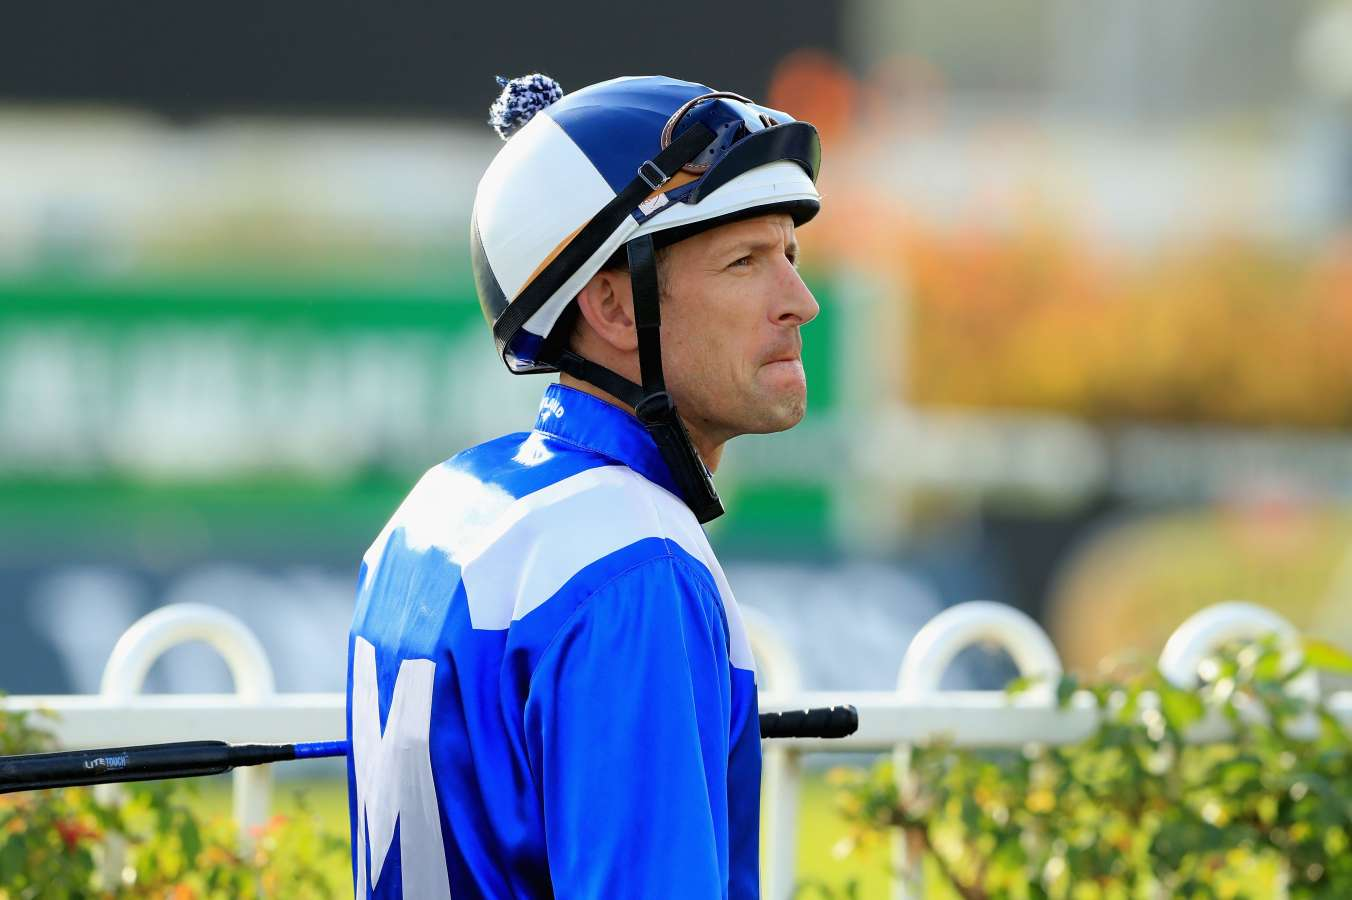 Hugh Bowman to miss Winx ride